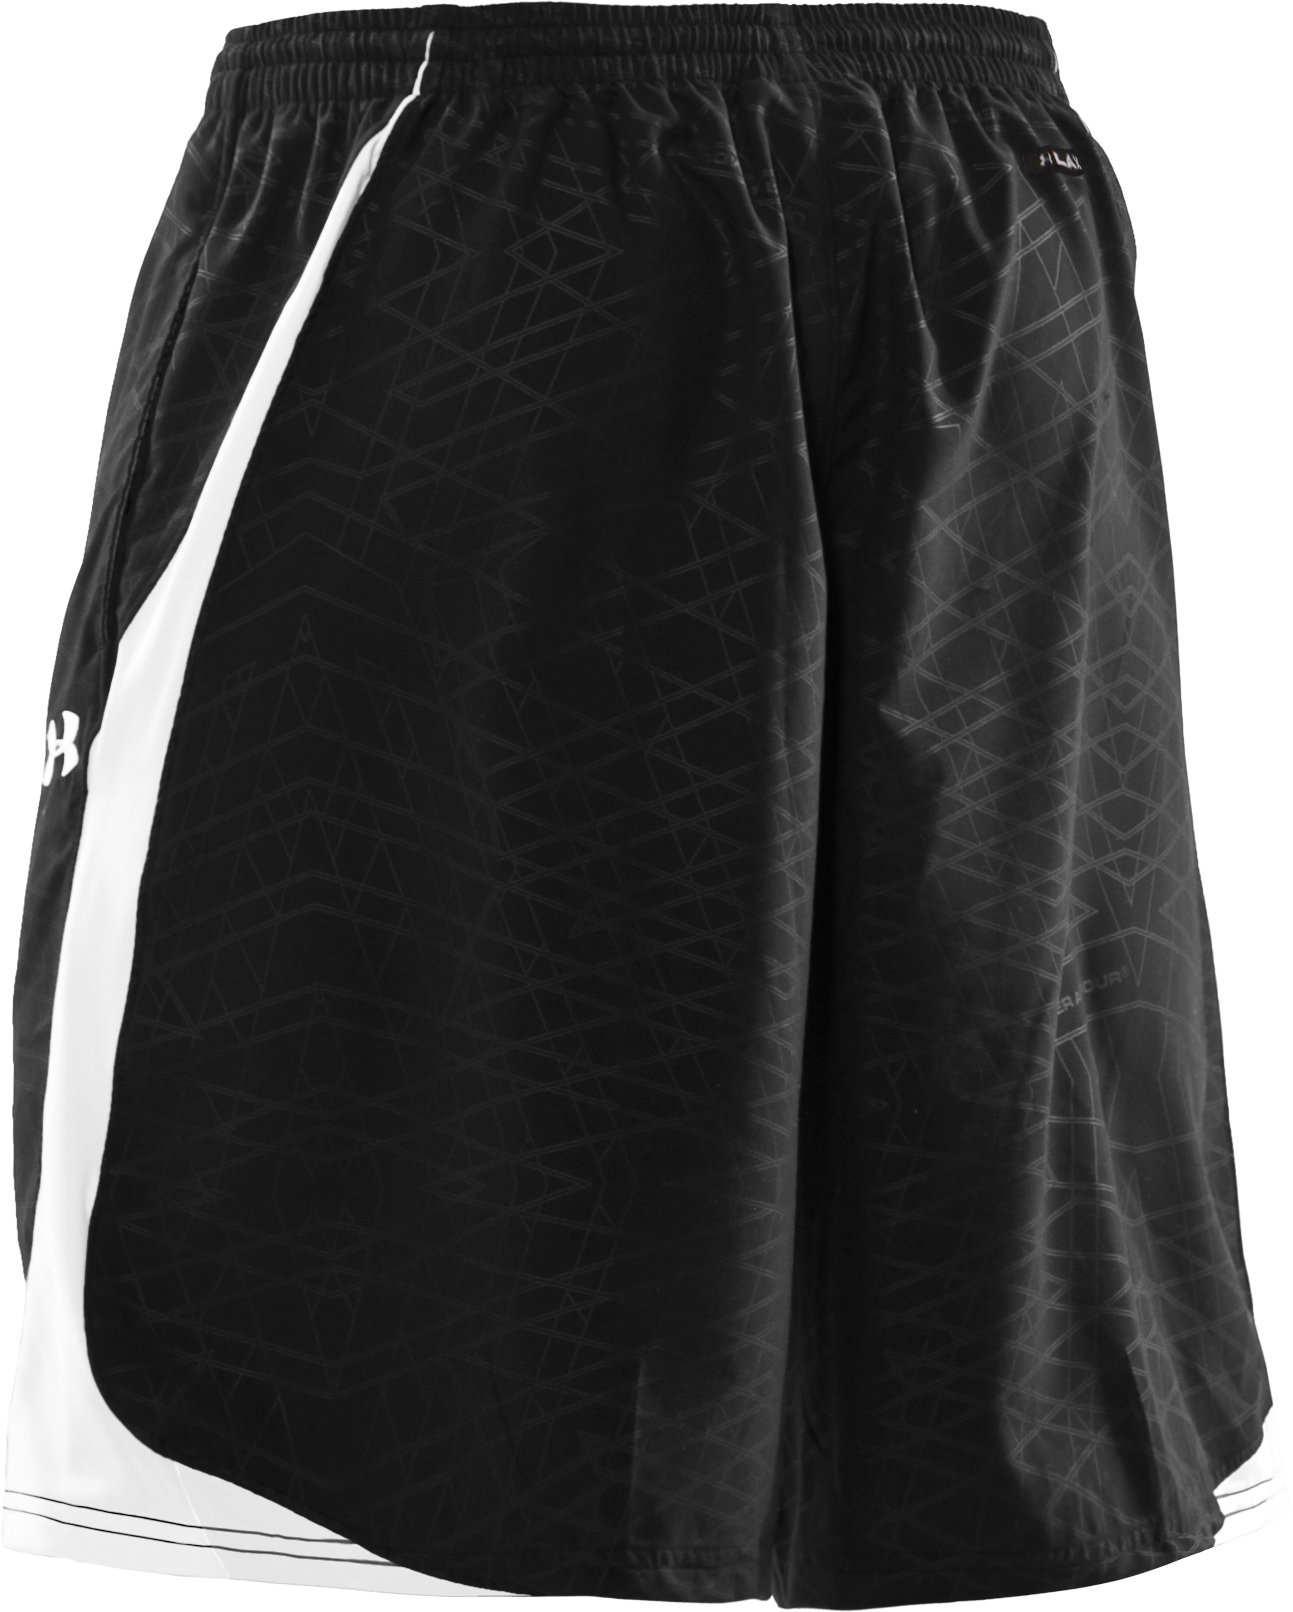 Men's UA Unity Shorts, Black